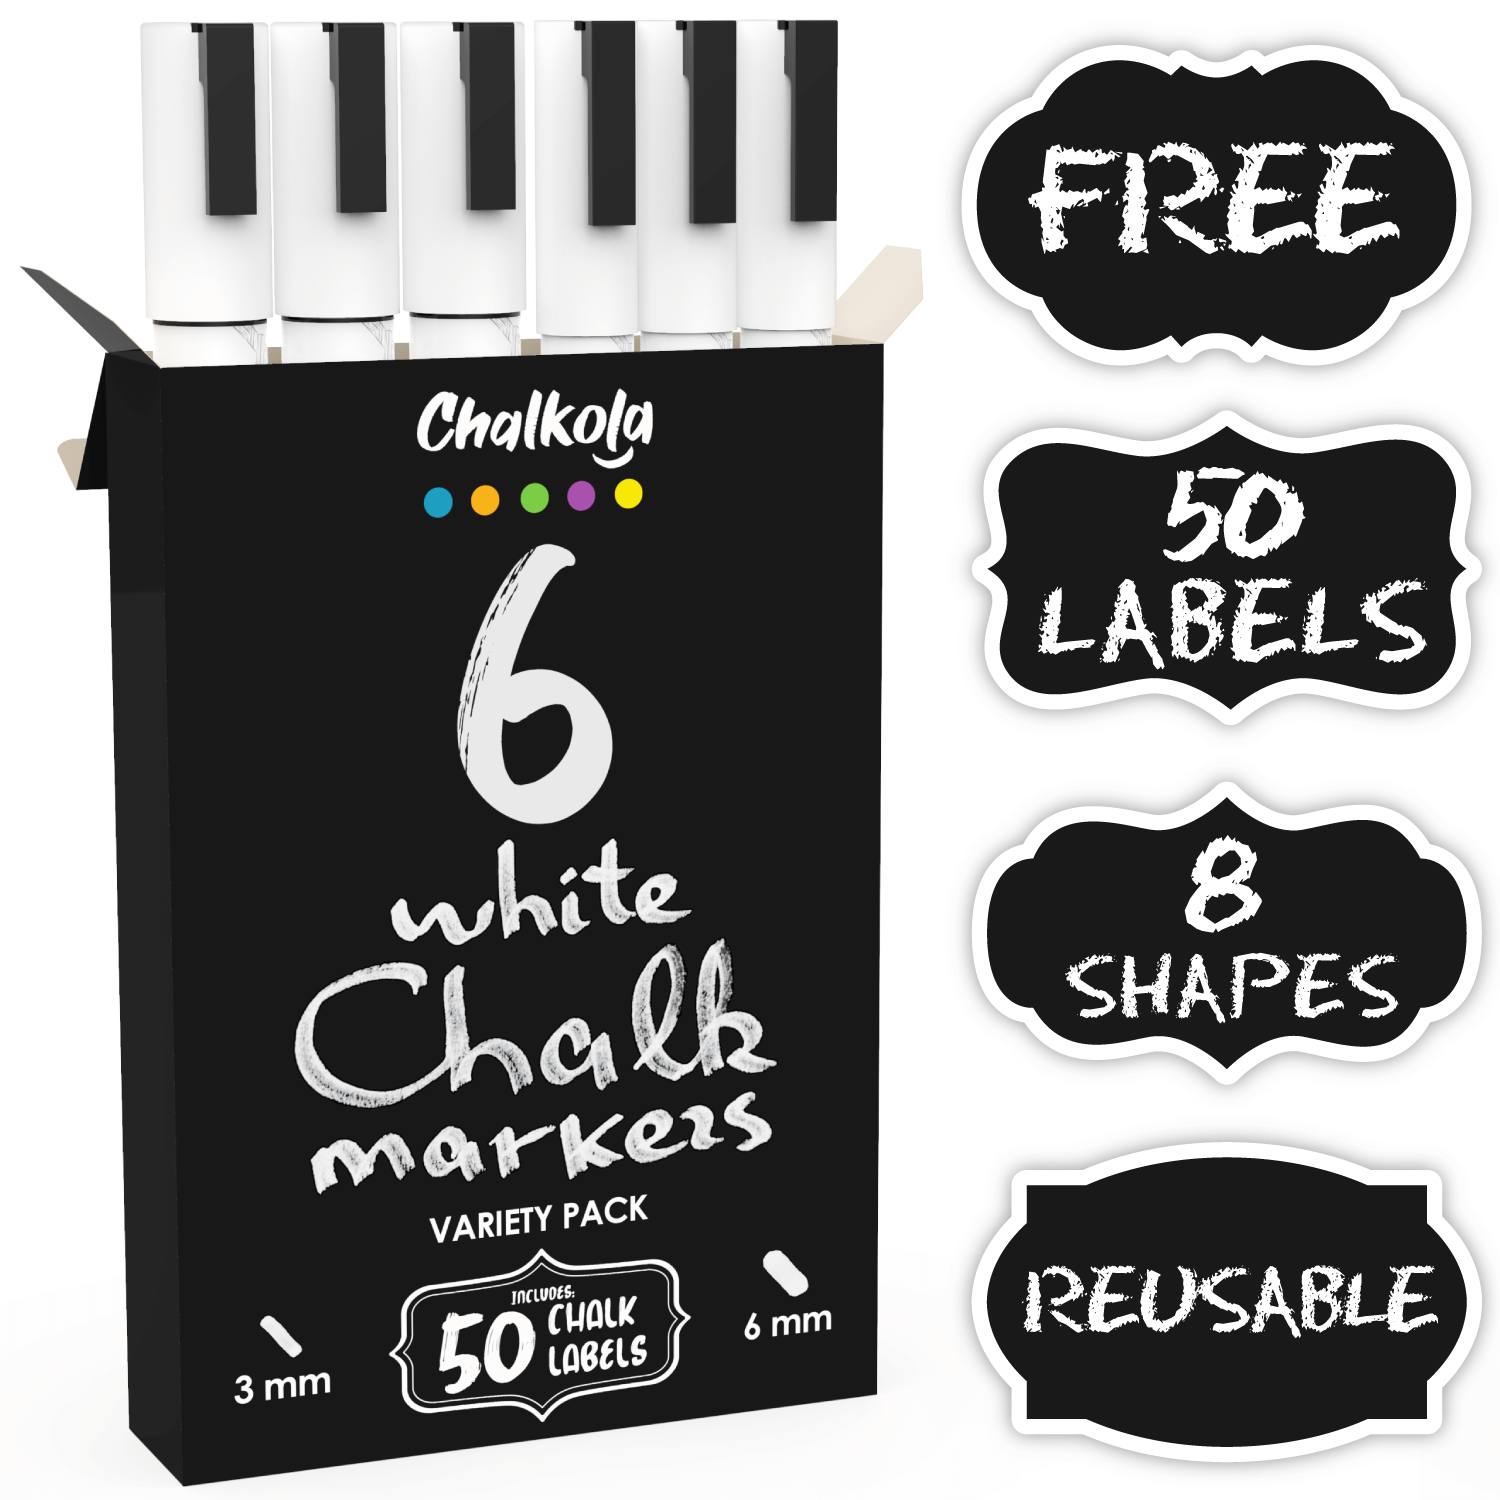 White Chalk Pens - Variety Pack of 6 | Fine and Bold Tip